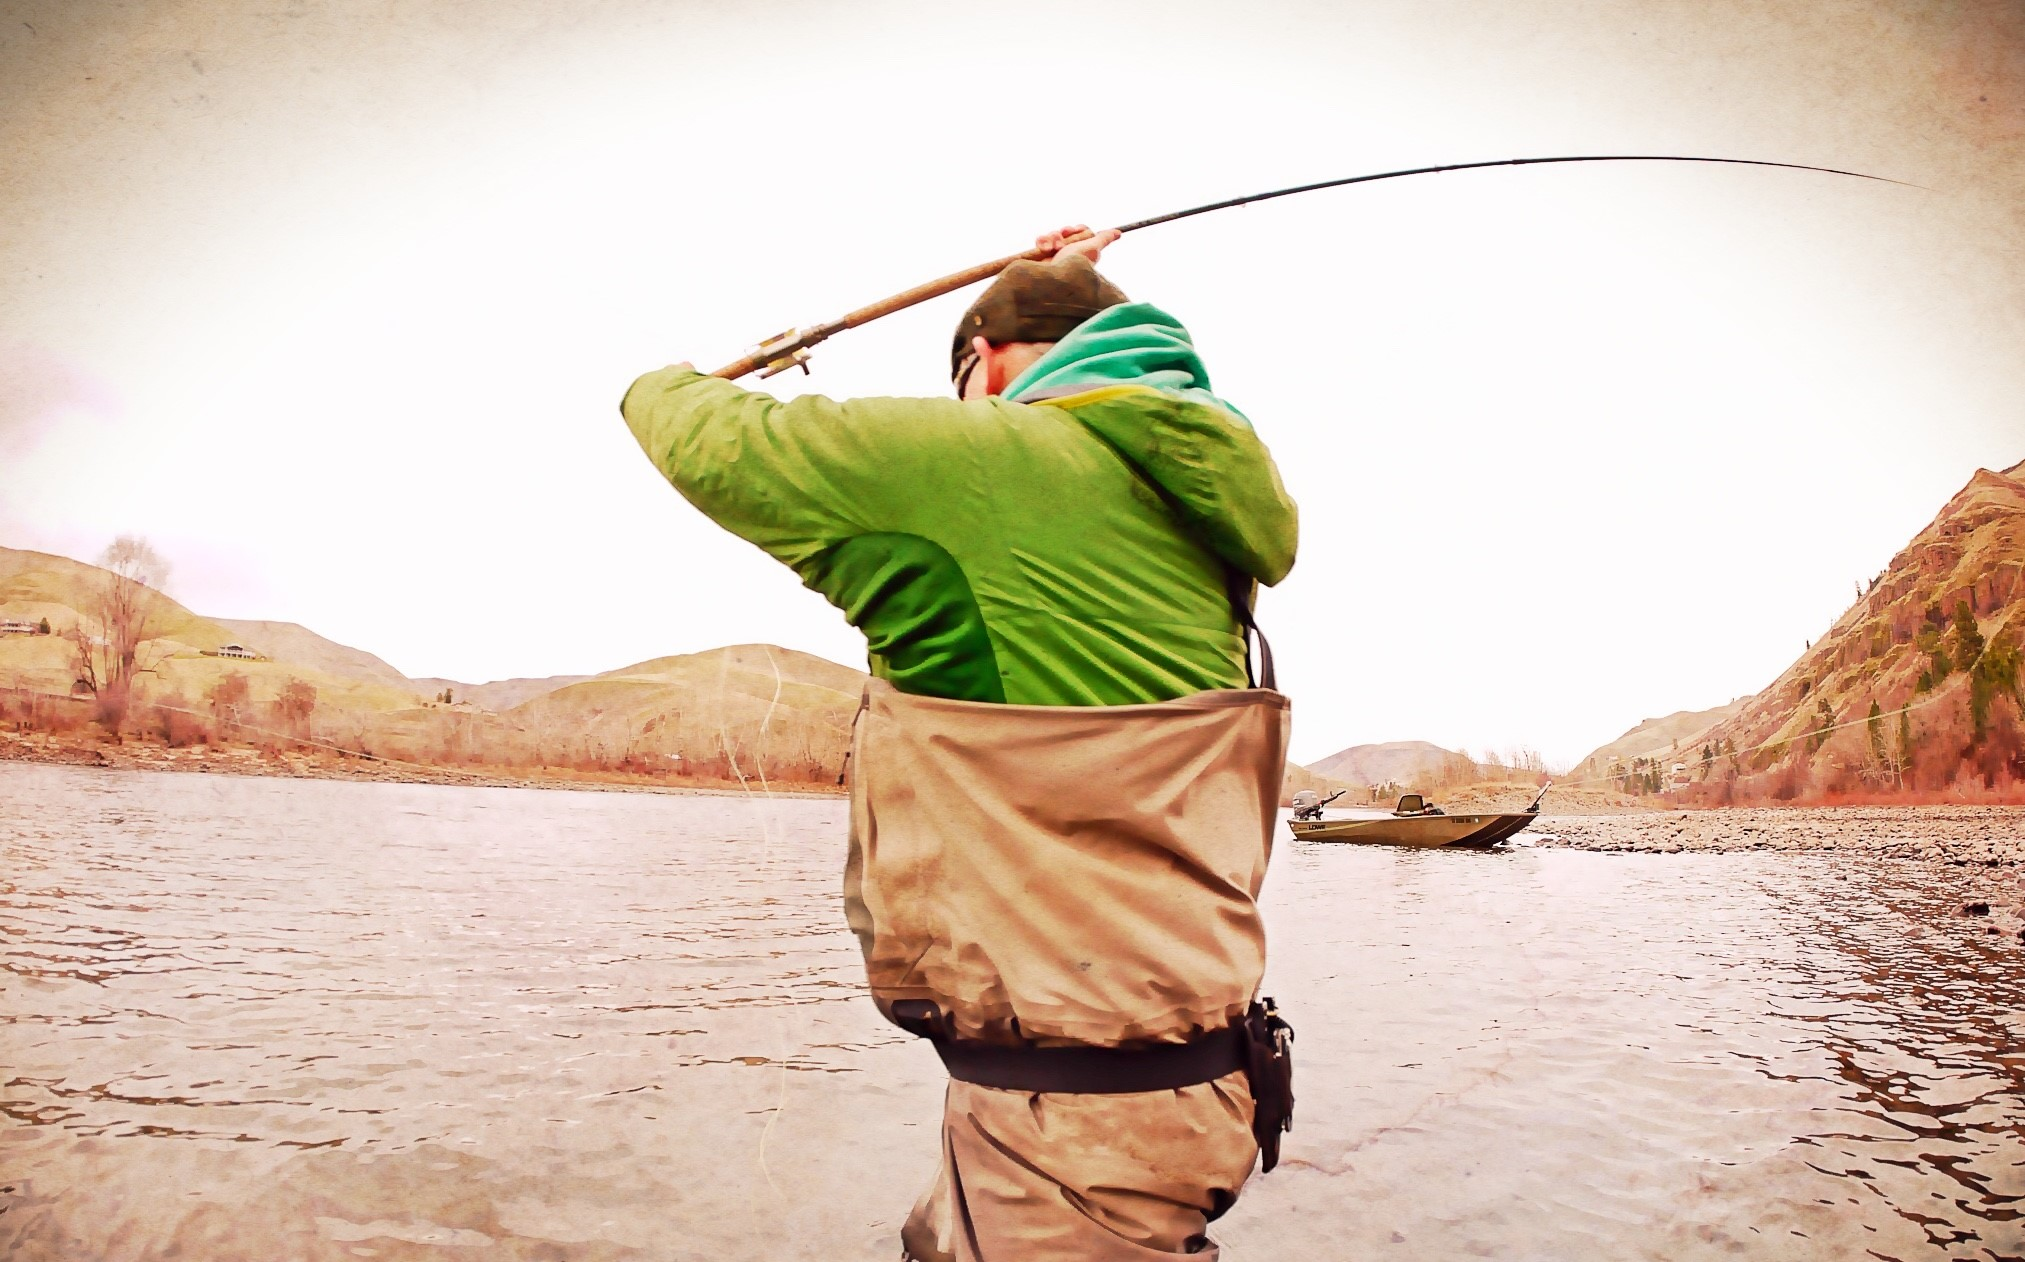 Tension: The Key to the Spey Cast?